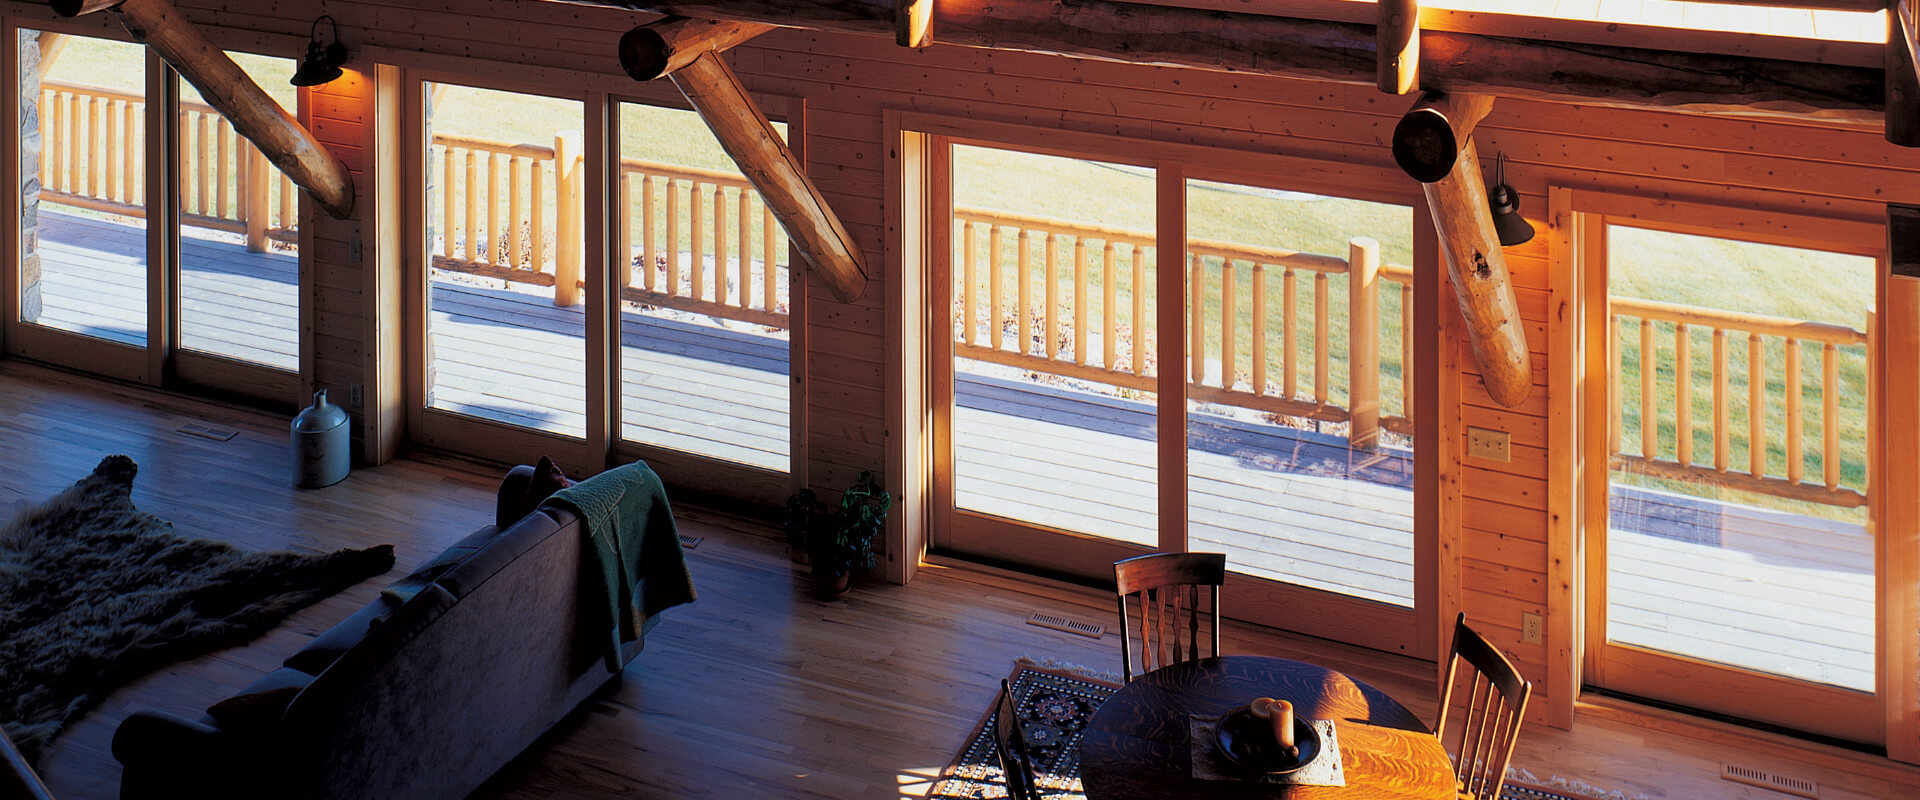 Heritage Series sliding patio doors.